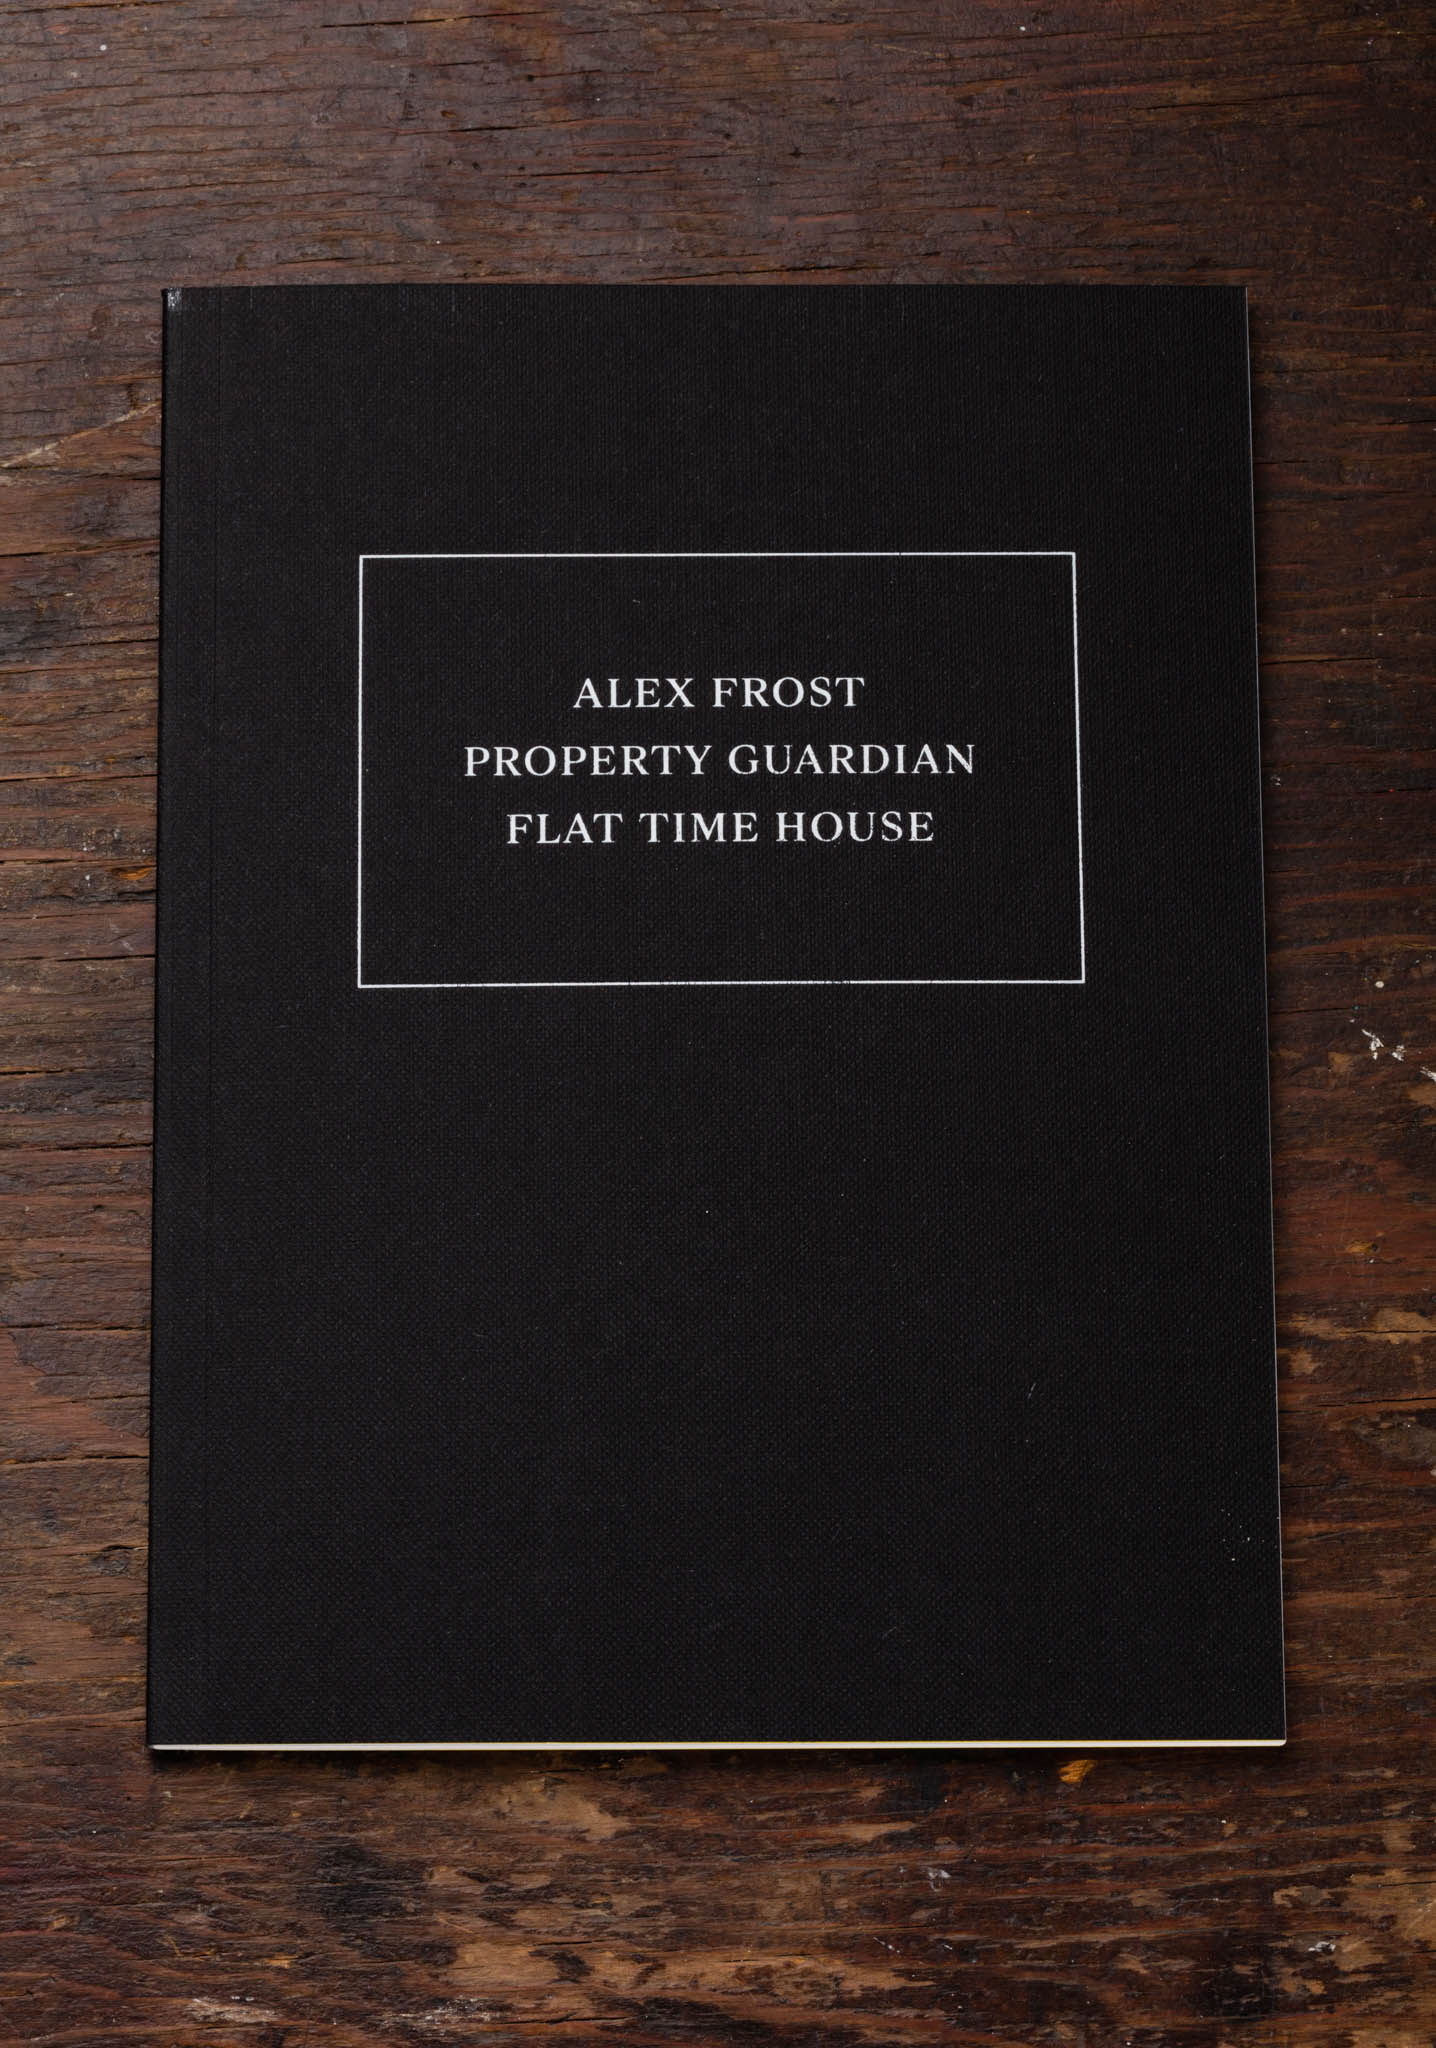 (Alex Frost - Property Guardian 0)